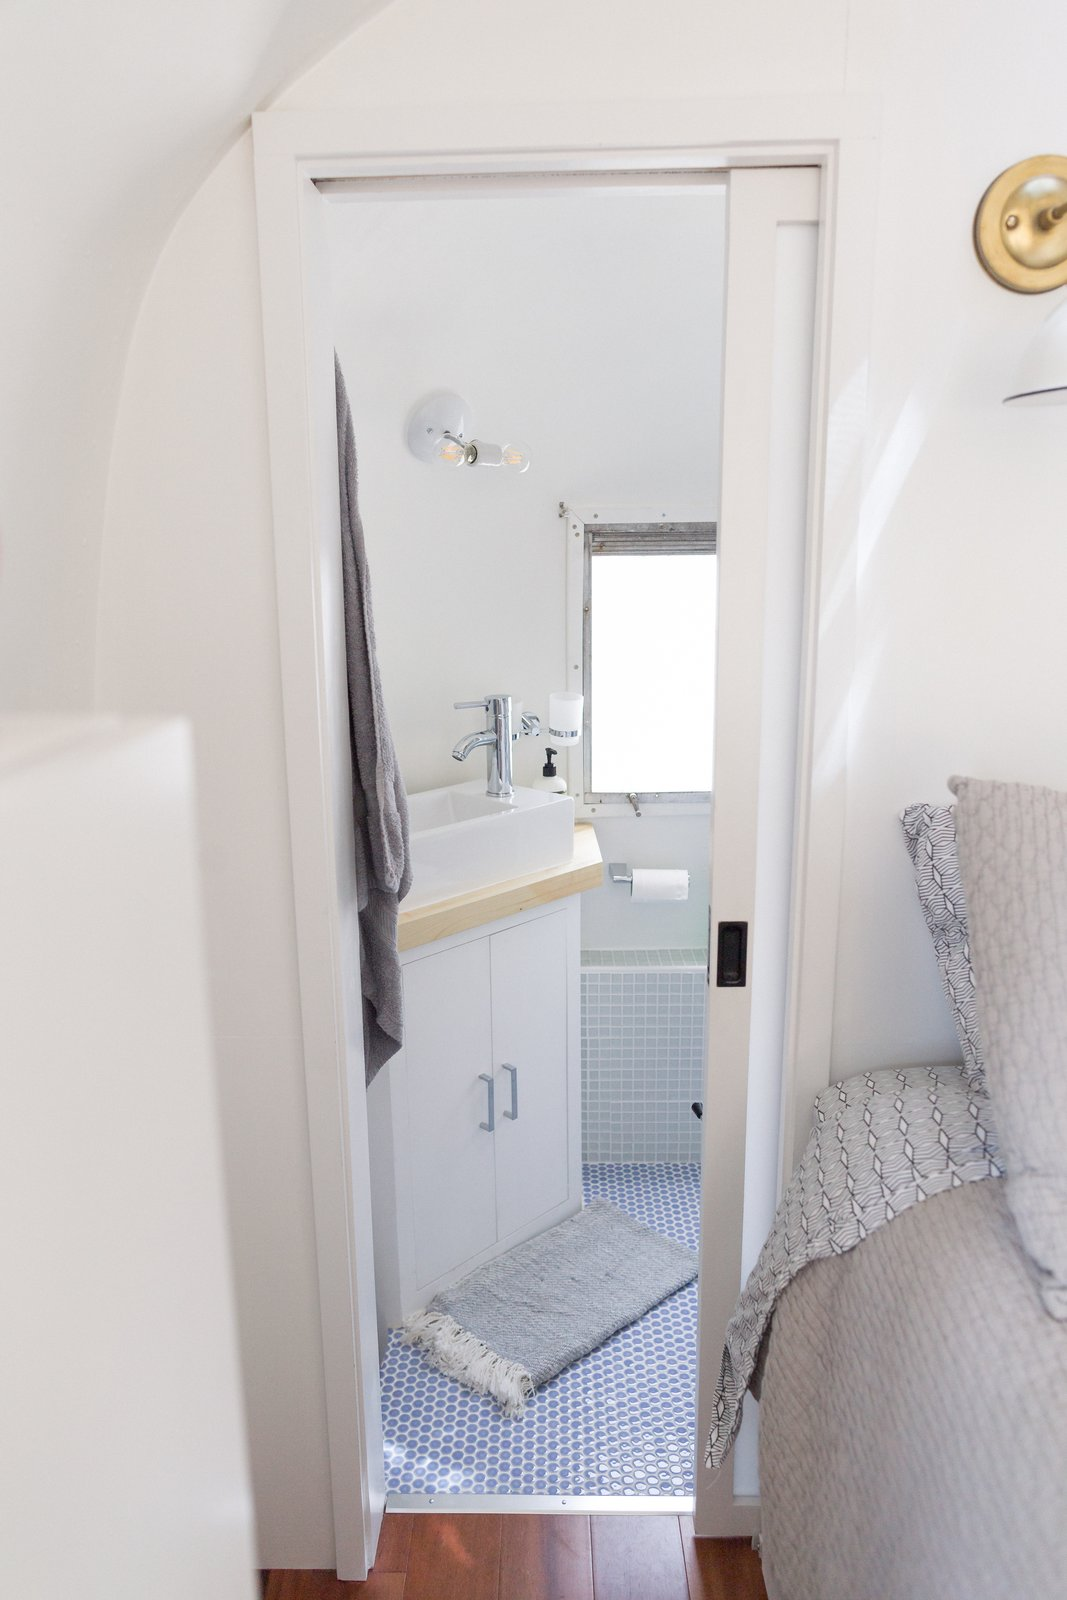 Photo 18 of 25 in See How an Oregon Couple Renovated Their 1966 Airstream